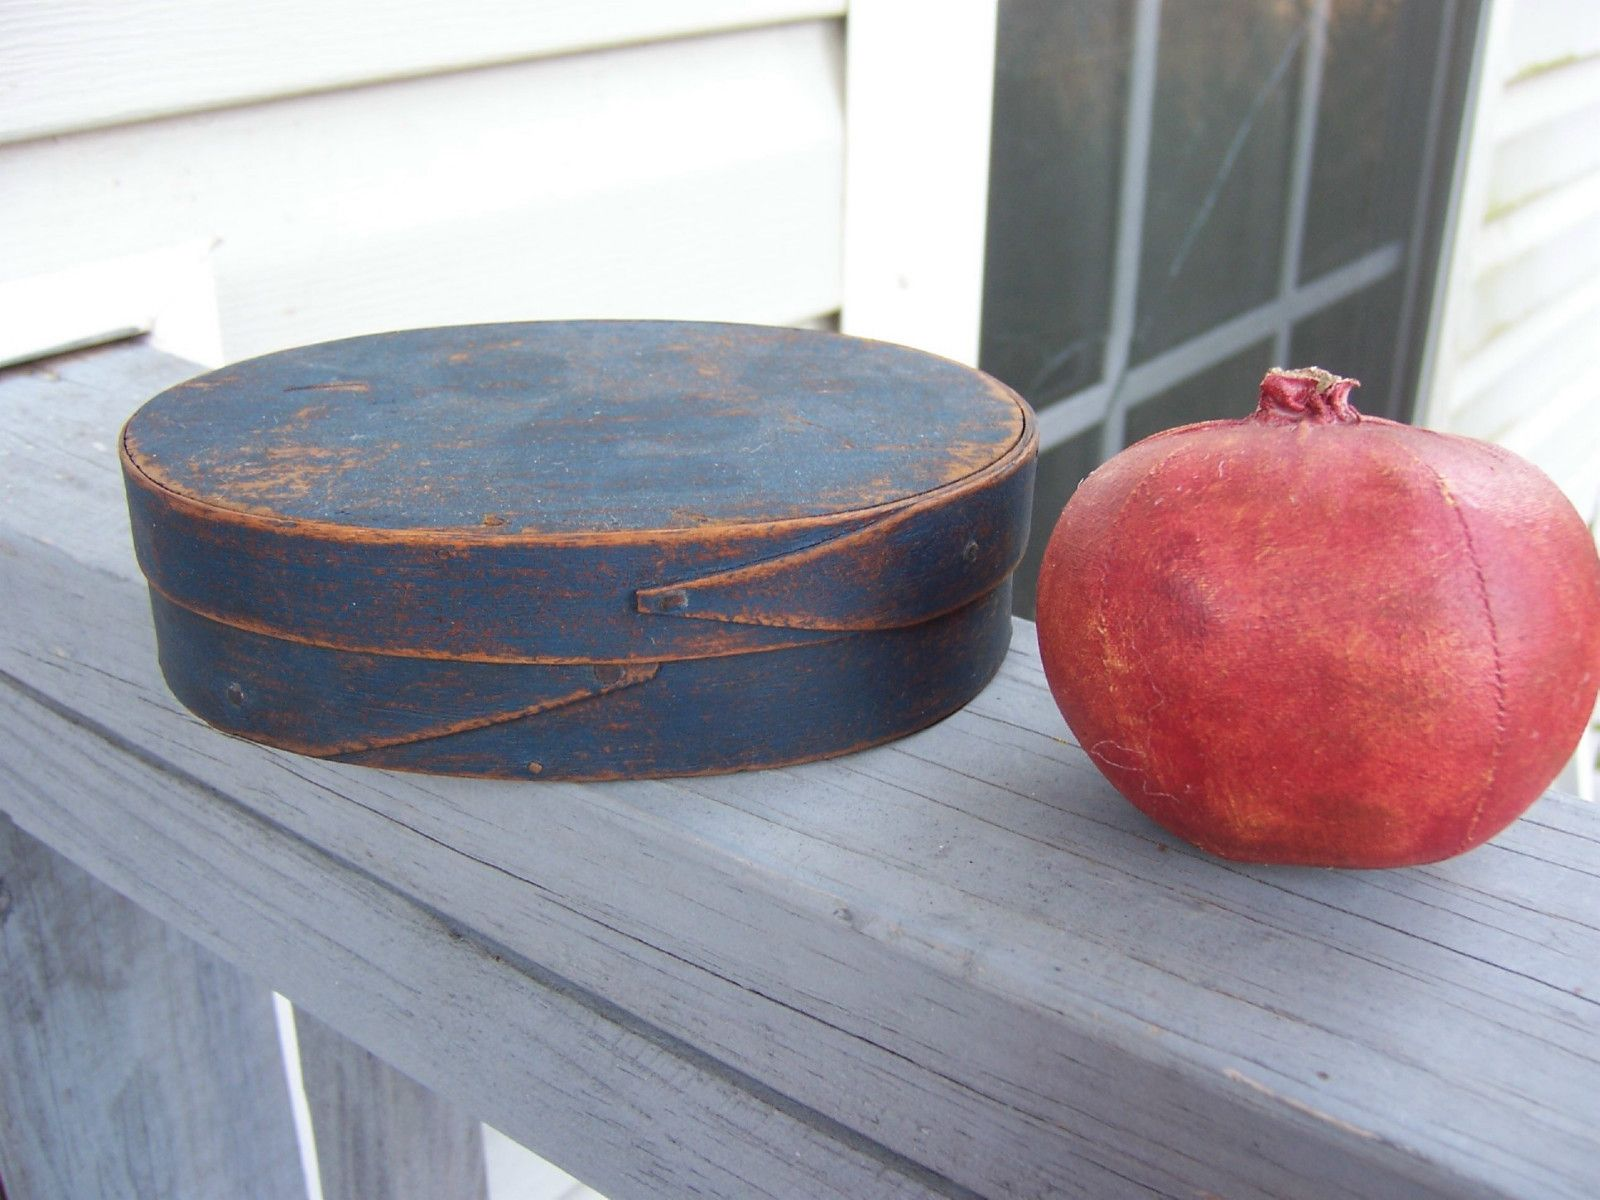 "AAFA 19th C Oval Shaker Pantry Box Fabulous Original Blue Paint.   Fabulous 19Th C Oval Shaker Pantry Box. Outstanding Original Blue paint. Best patina and paint wear. Just over 5 1/2"" long X  just under 4"" wide X 1 1/2"" deep. 